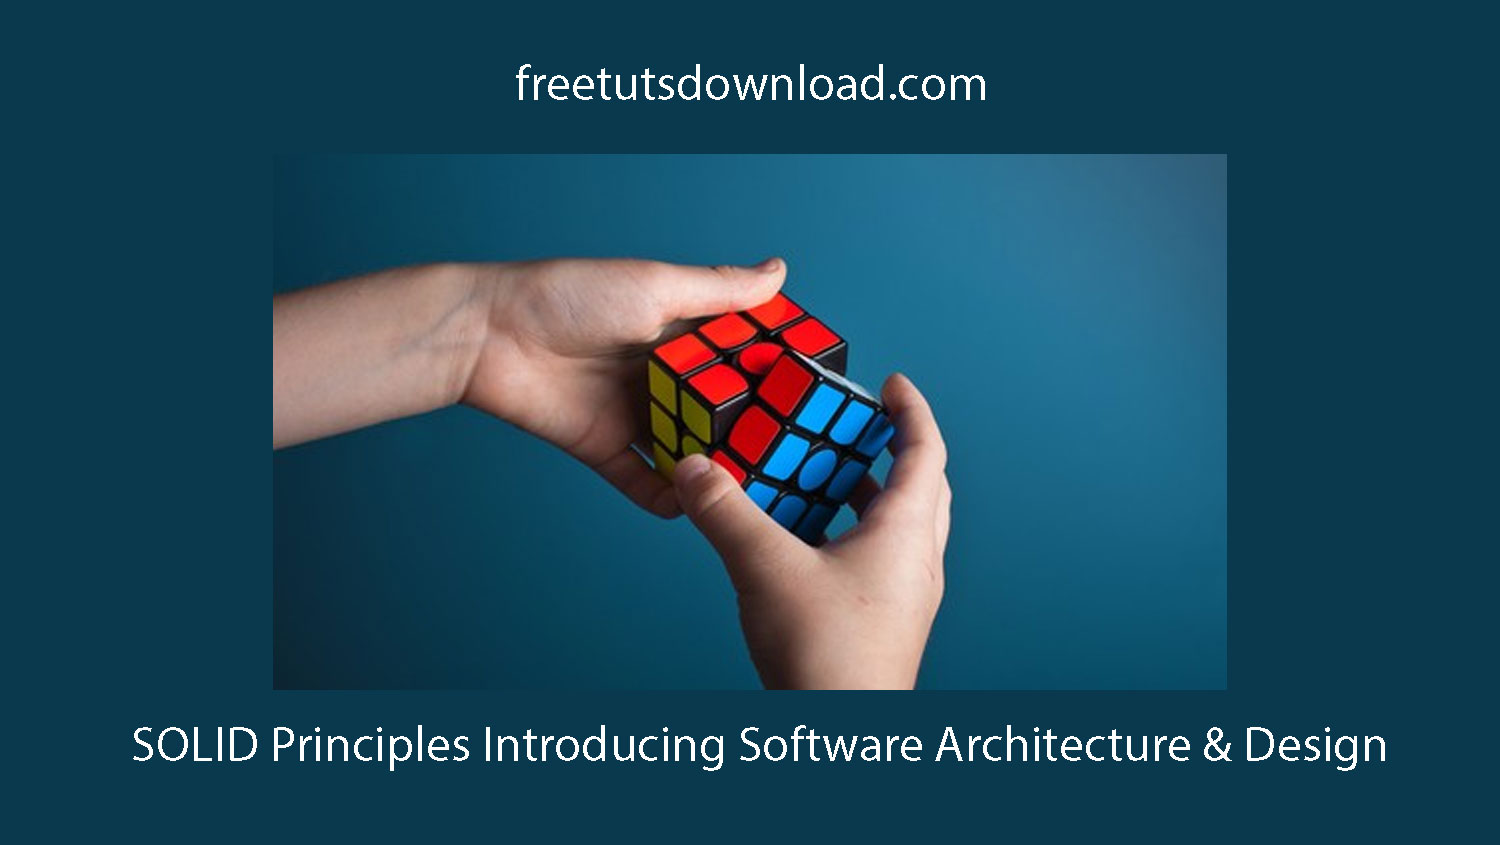 SOLID Principles Introducing Software Architecture & Design